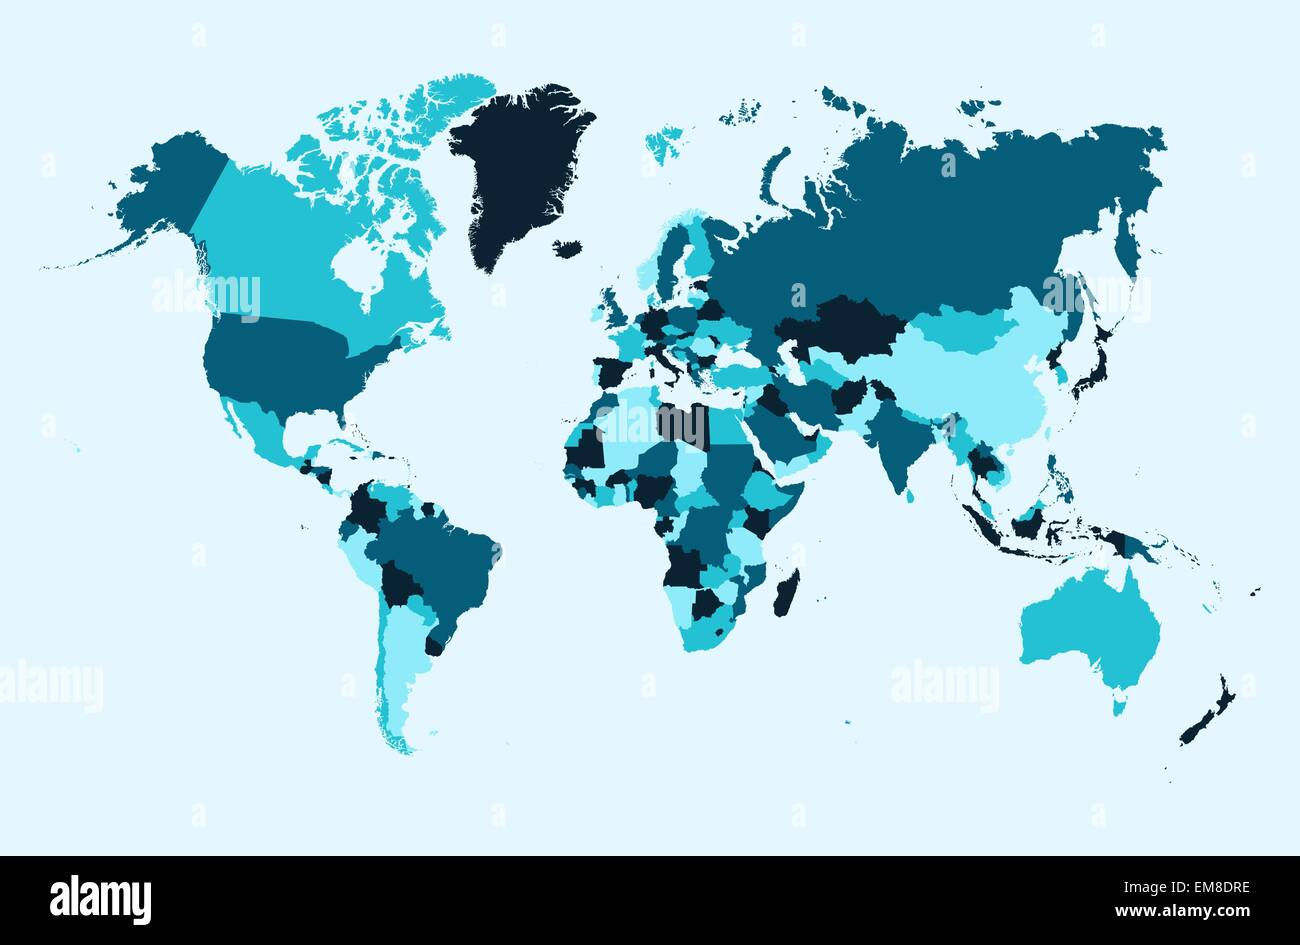 World map, blue countries illustration EPS10 vector file. - Stock Image